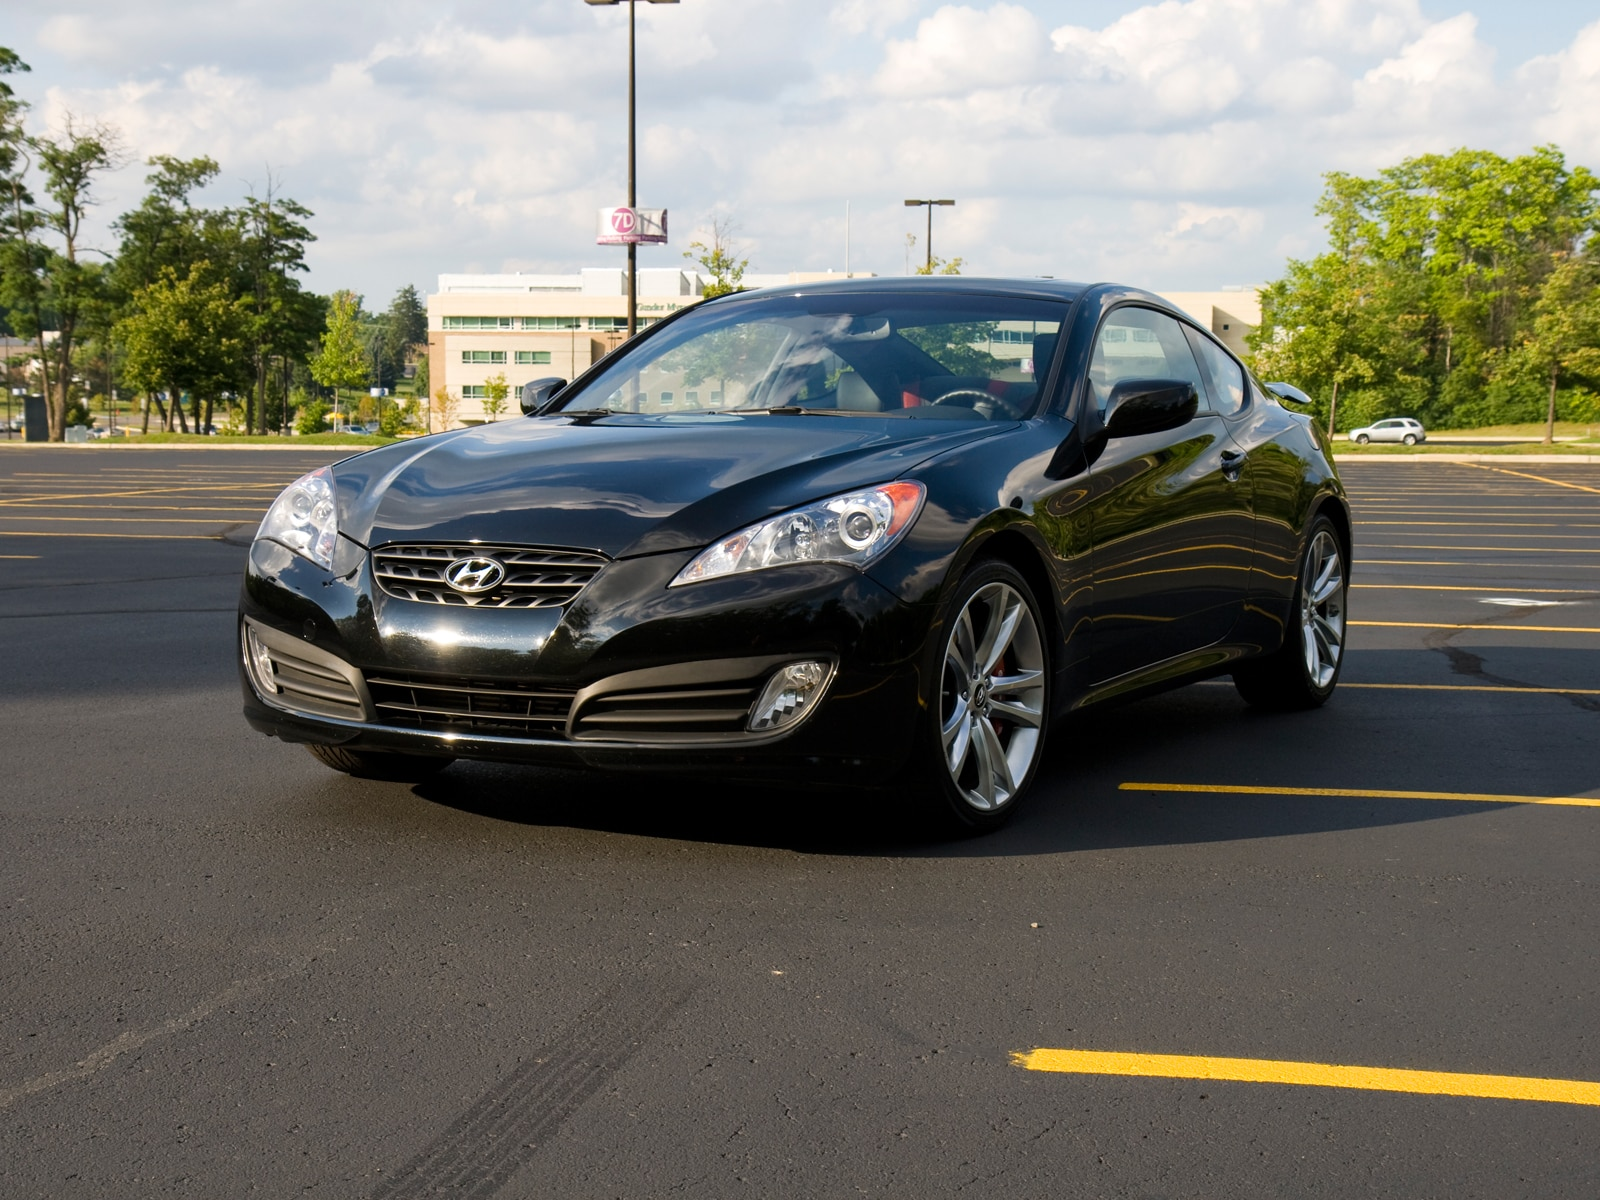 0908 02 Z 2010 Hyundai Genesis Coupe 20t Track Pack Front Three Quarter View